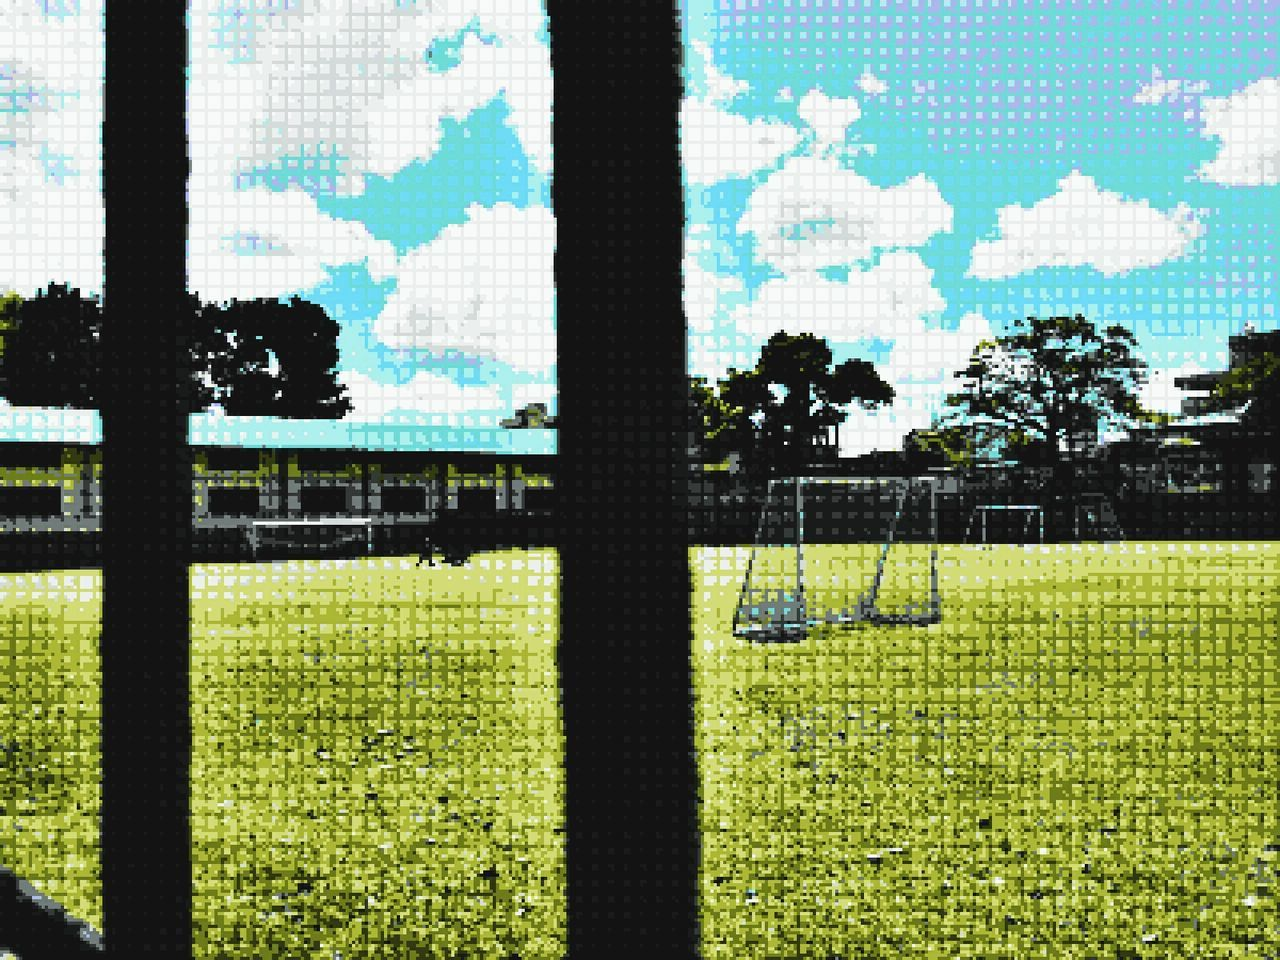 grass, field, playing field, sport, day, sunlight, tree, soccer field, green color, no people, growth, outdoors, soccer, shadow, nature, sky, scenics, goal post, beauty in nature